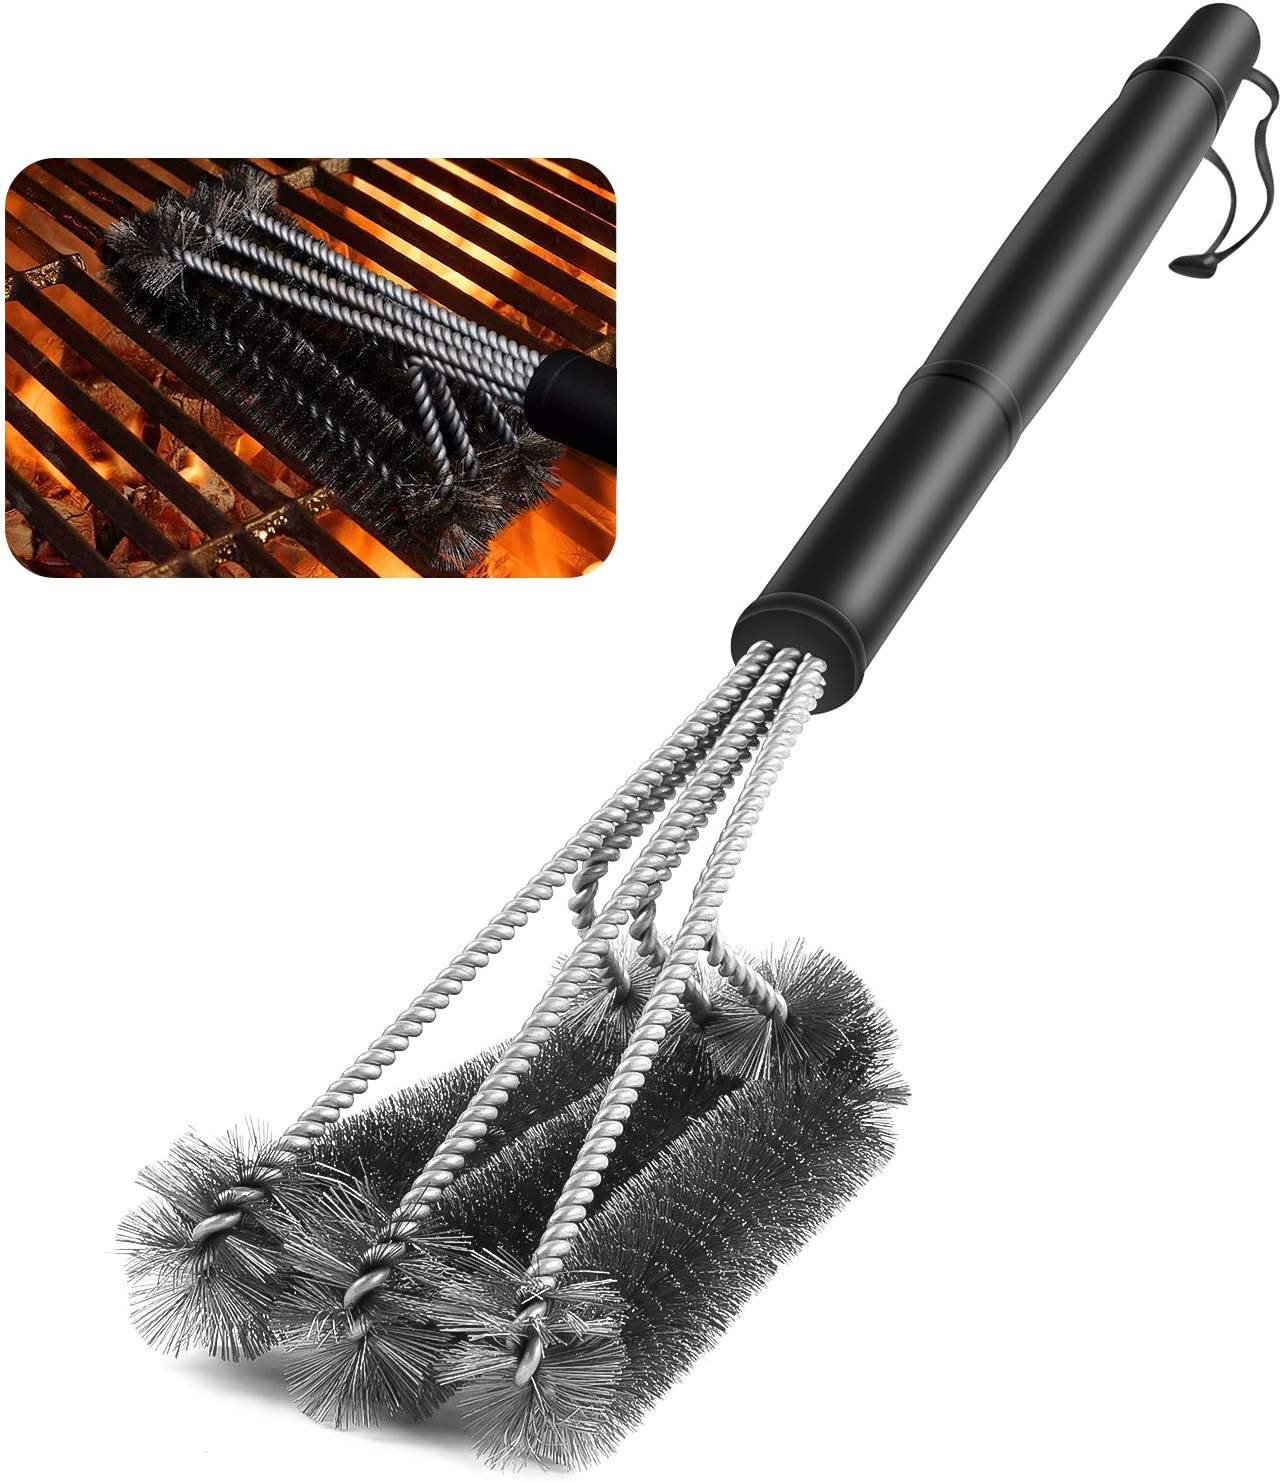 Details about  /Barbecue Grill Brush BBQ Kit Cleaning Stainless Steel Nonstick Cleaning Brushes